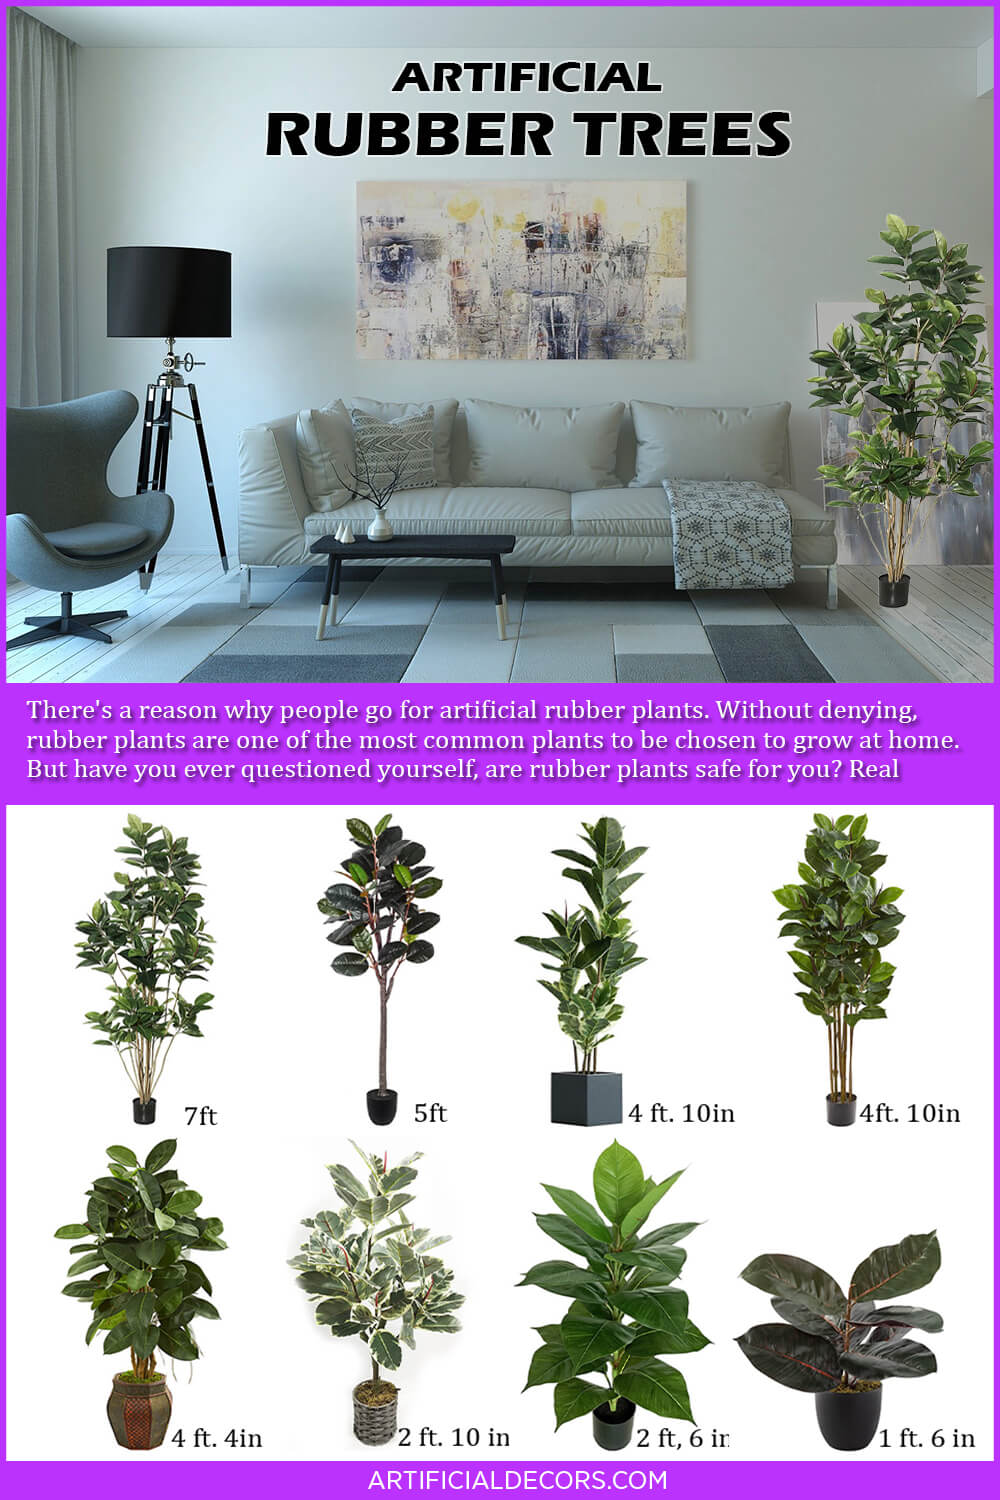 Artificial Rubber Trees